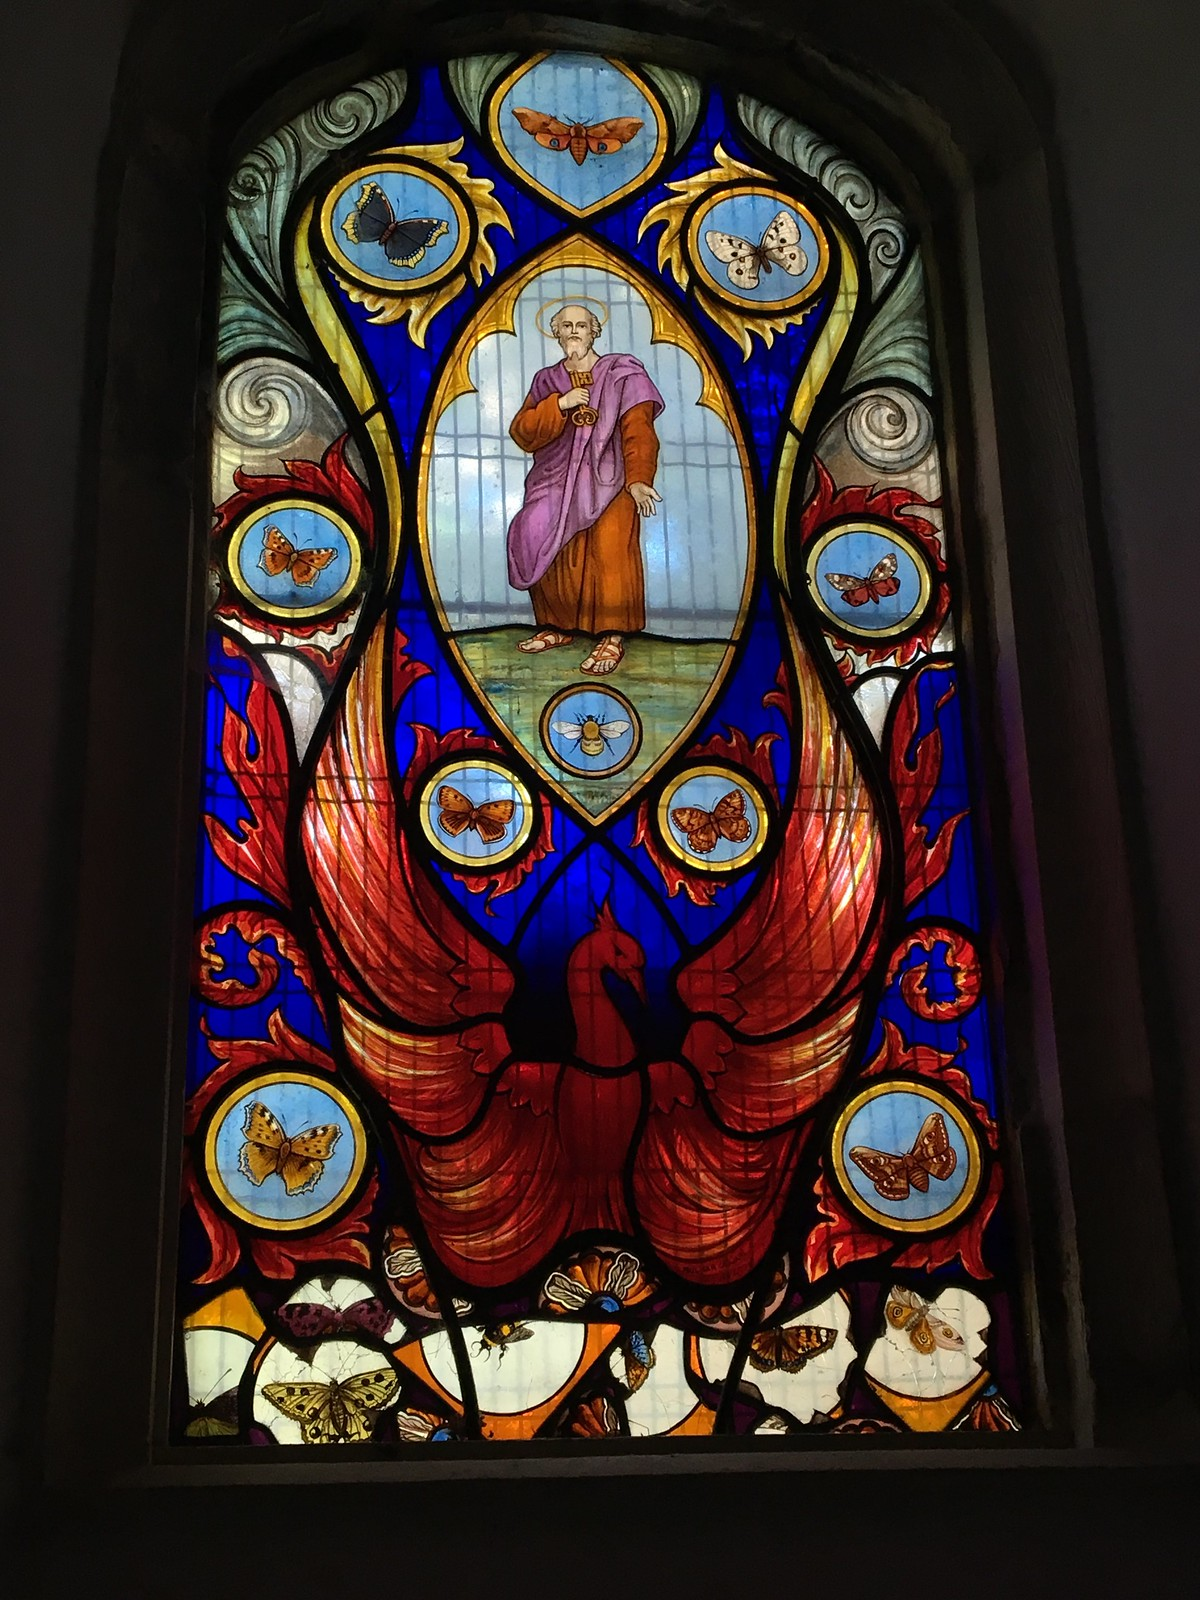 August 25, 2019: Berwick to Eastbourne Wilmington church's bee & butterfly window